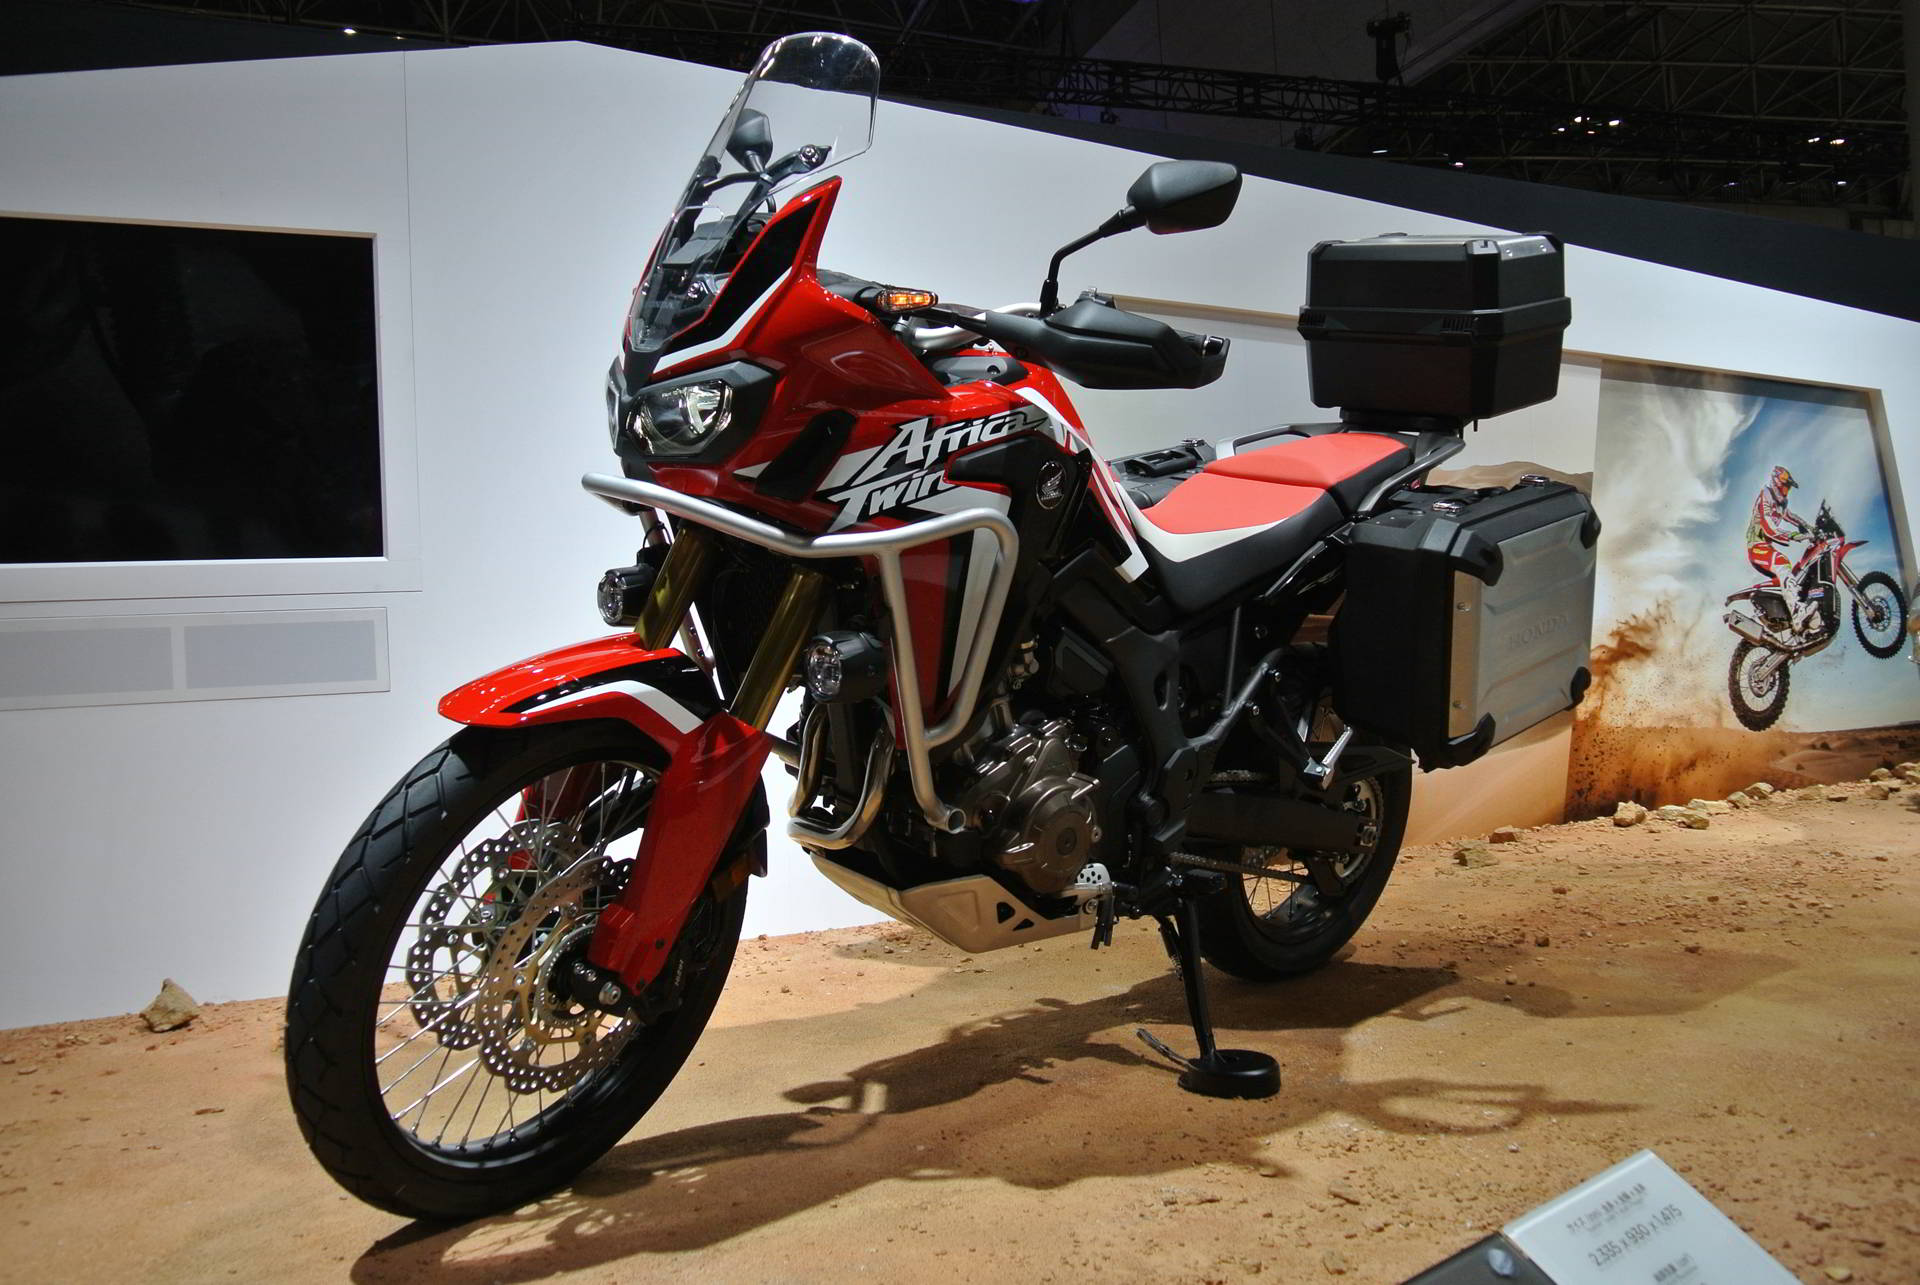 Honda showrooms in Nepal